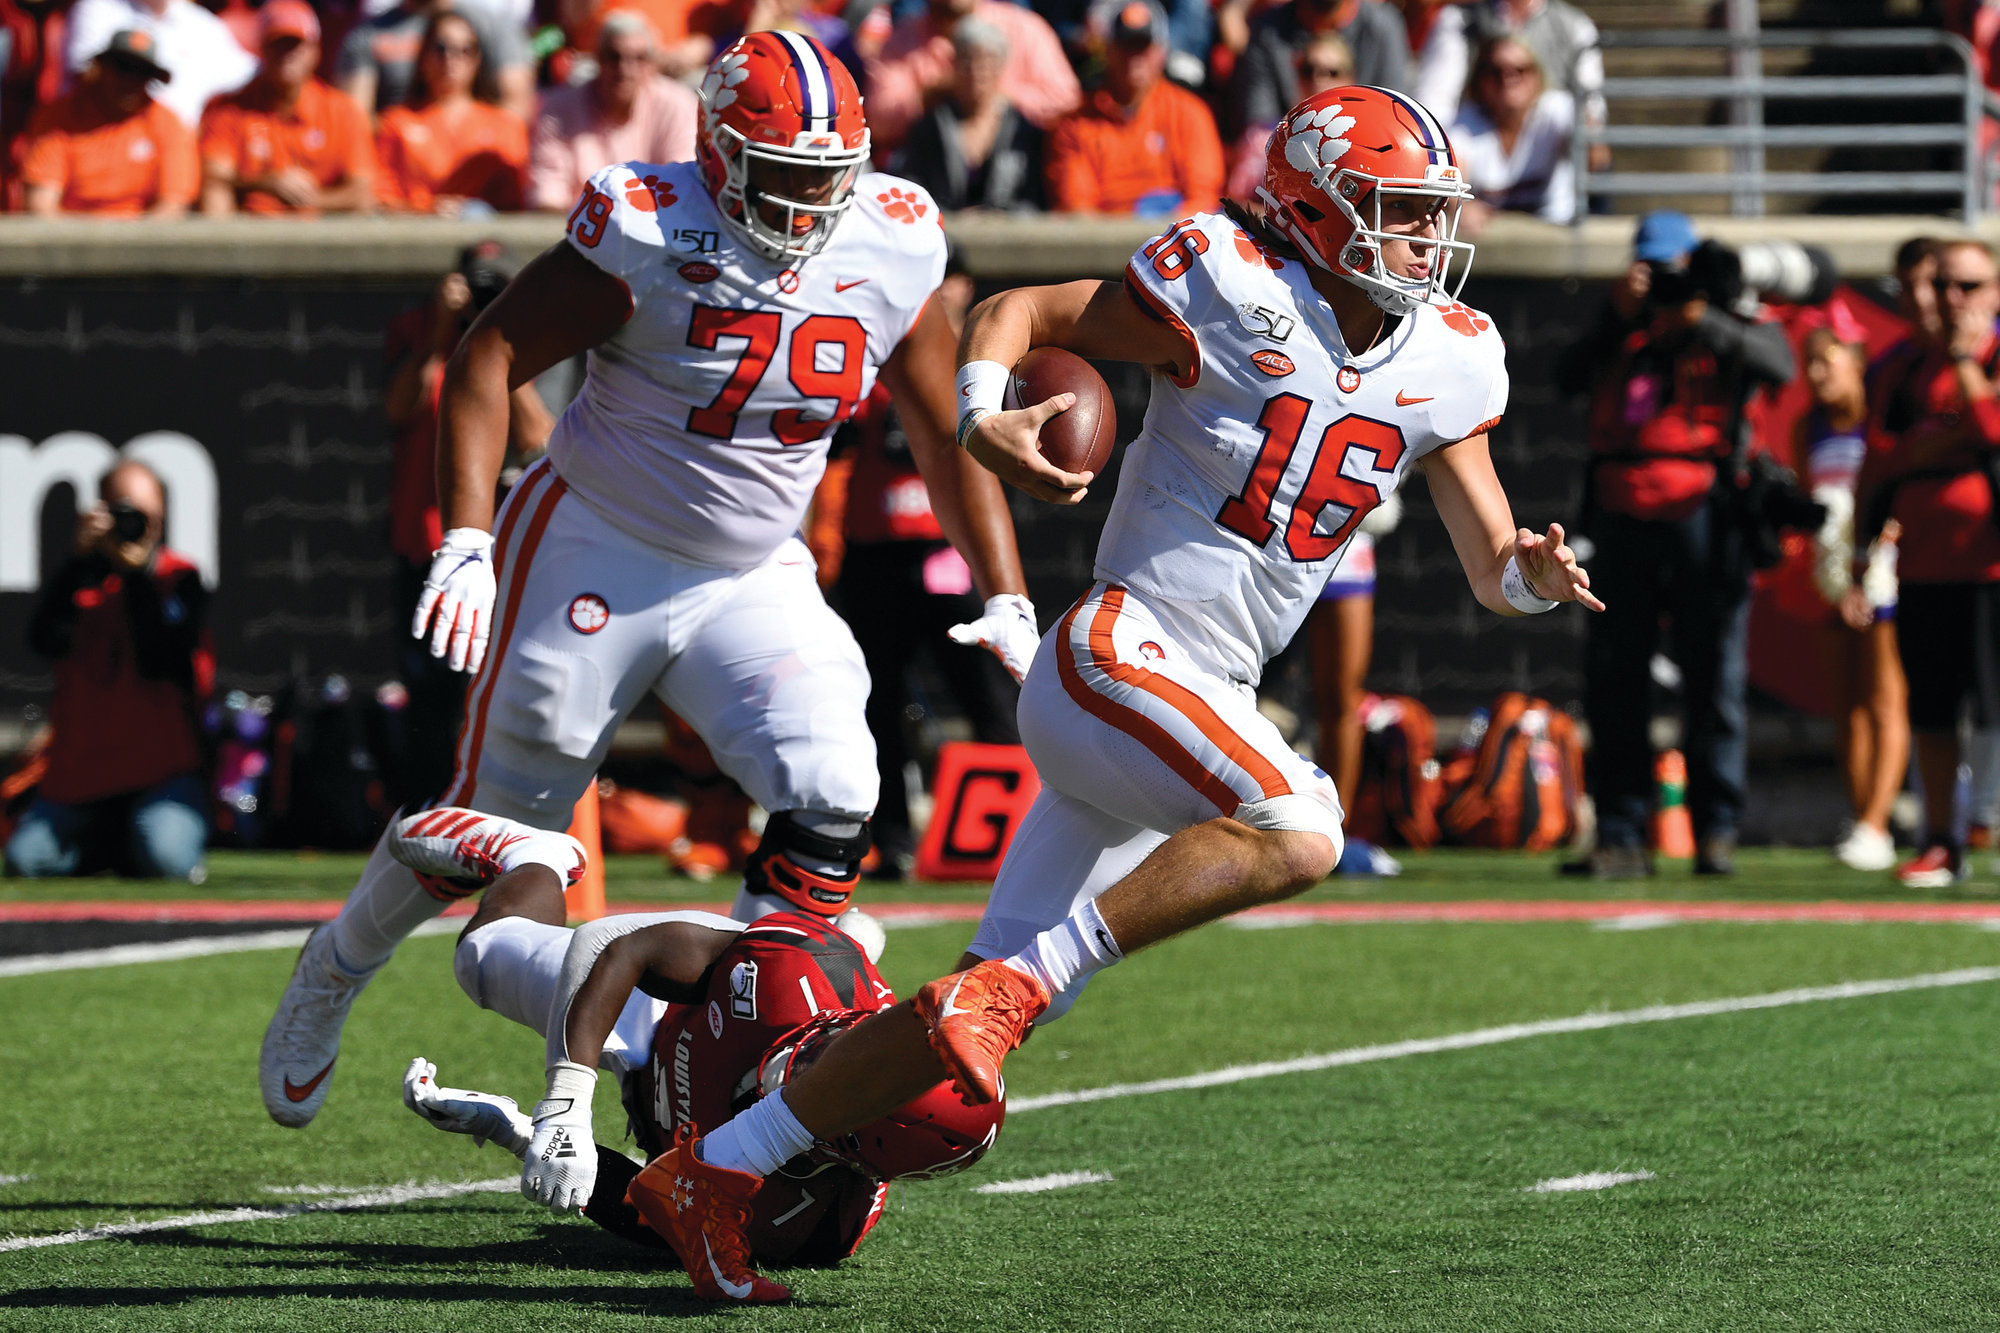 Qb Lawrence Welcomes Critics Wins For No 4 Clemson The